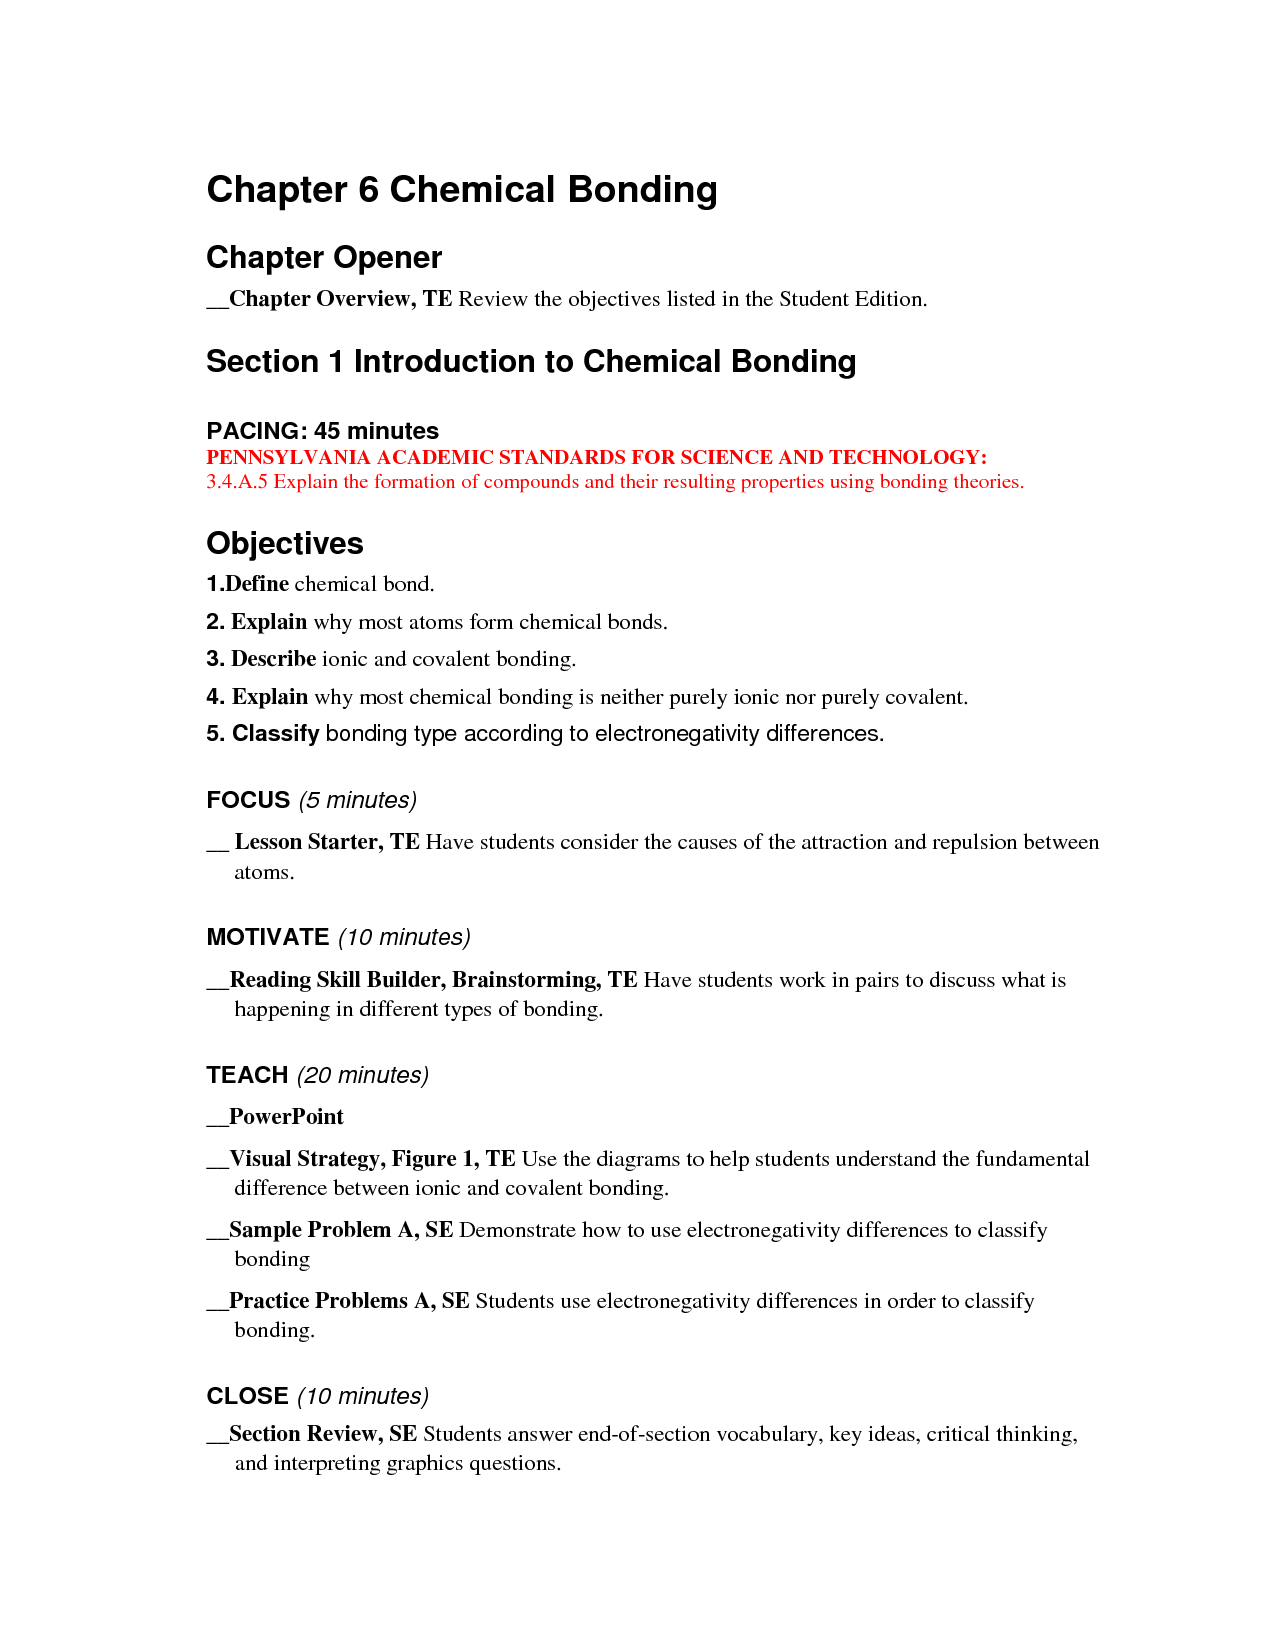 31 Chapter 6 Chemical Bonding Worksheet Answers